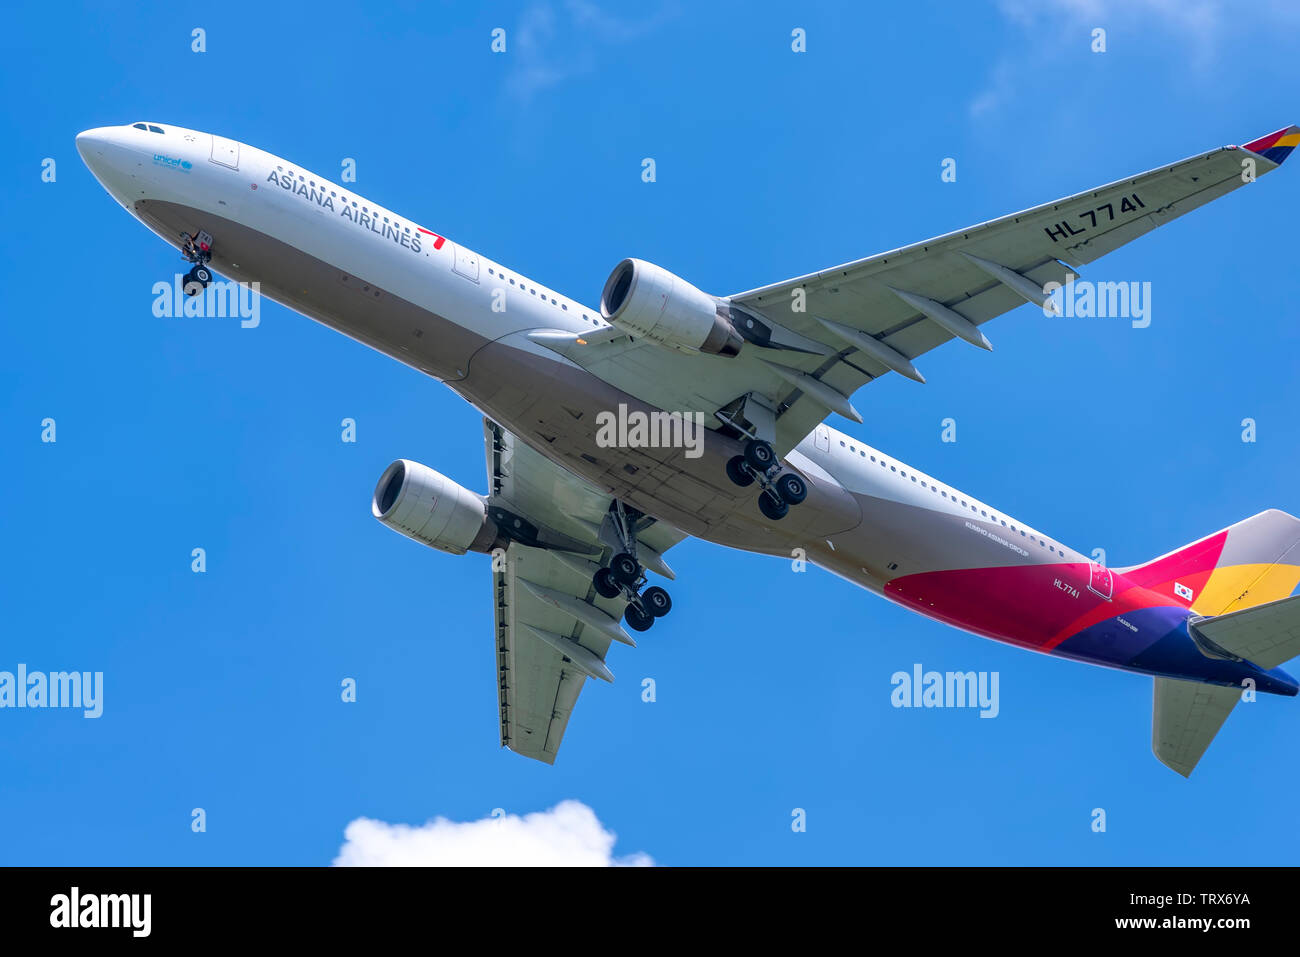 Passenger airplane Airbus A330 of Asiana Airlines flying through clouds sky take off from Tan Son Nhat International Airport, Ho Chi Minh City, Vietna - Stock Image